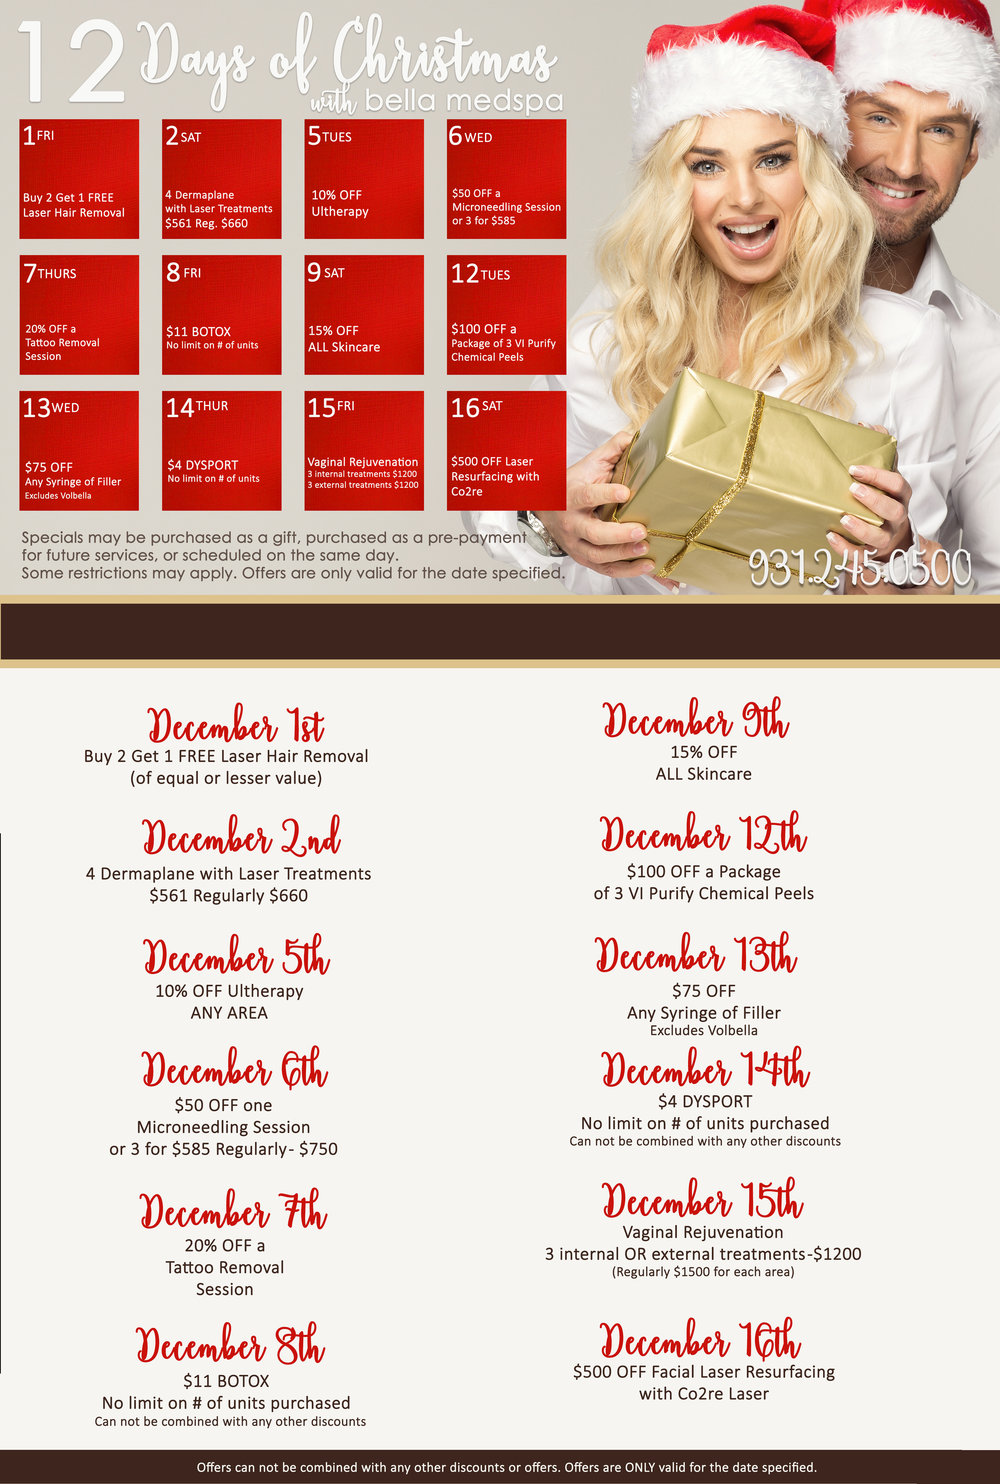 Specials events bella medical spa for 12 days of christmas salon specials